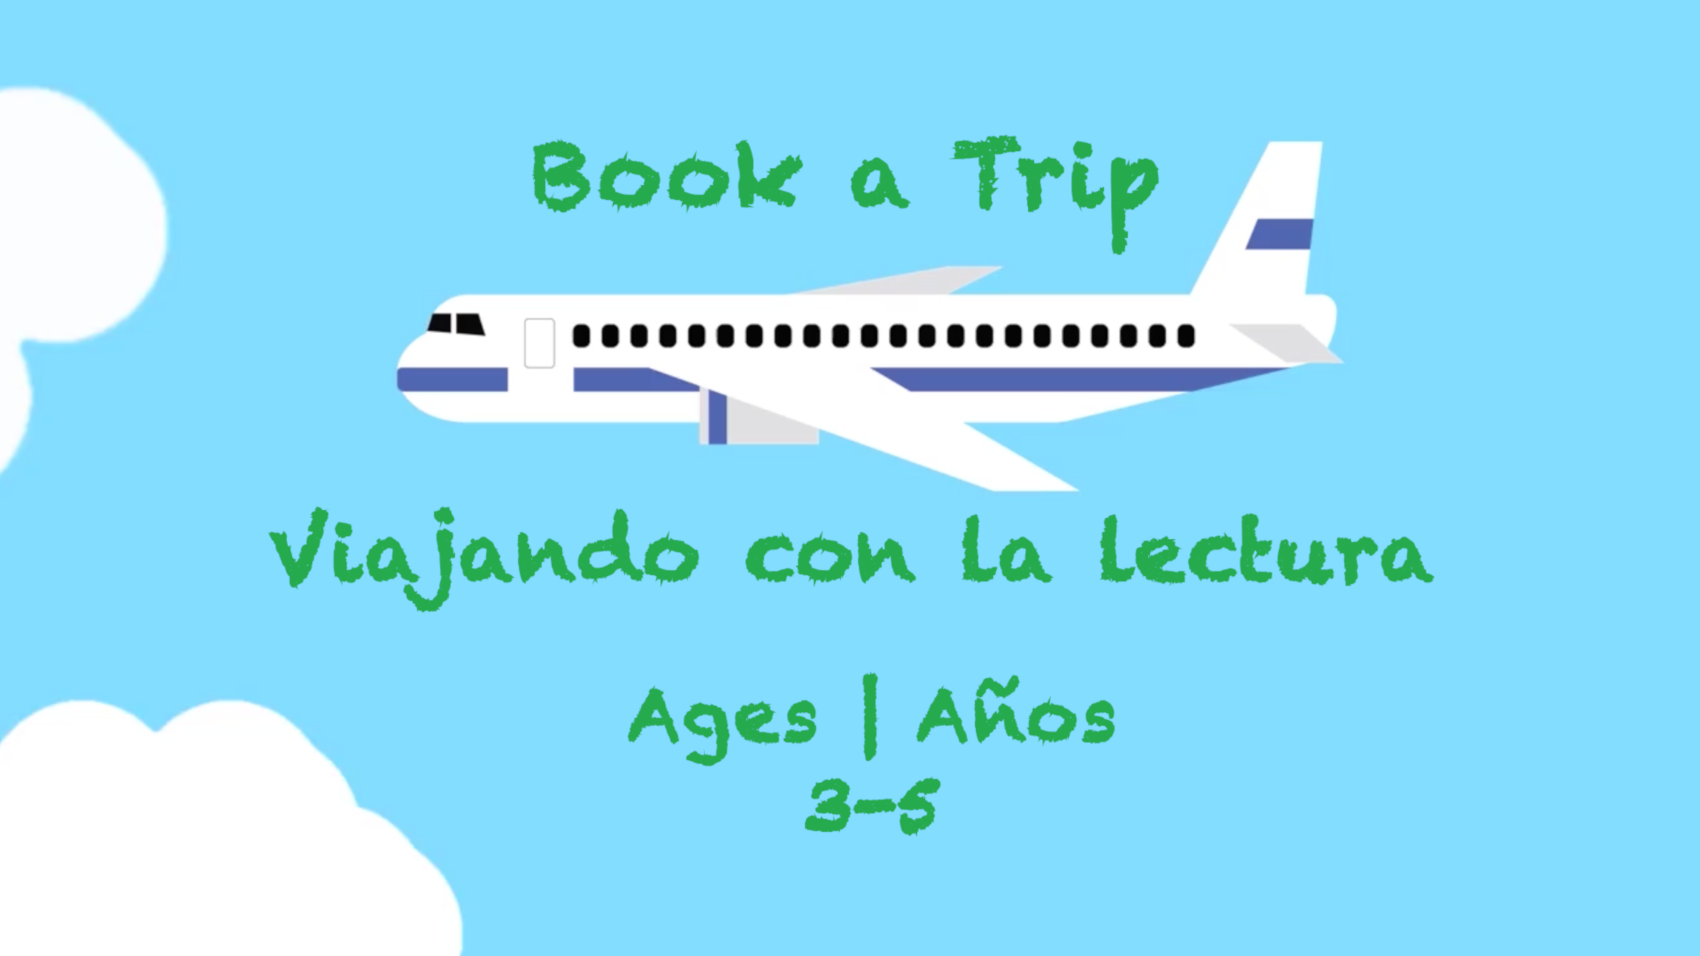 Weekly Themes 25 Book a Trip 3-5 years